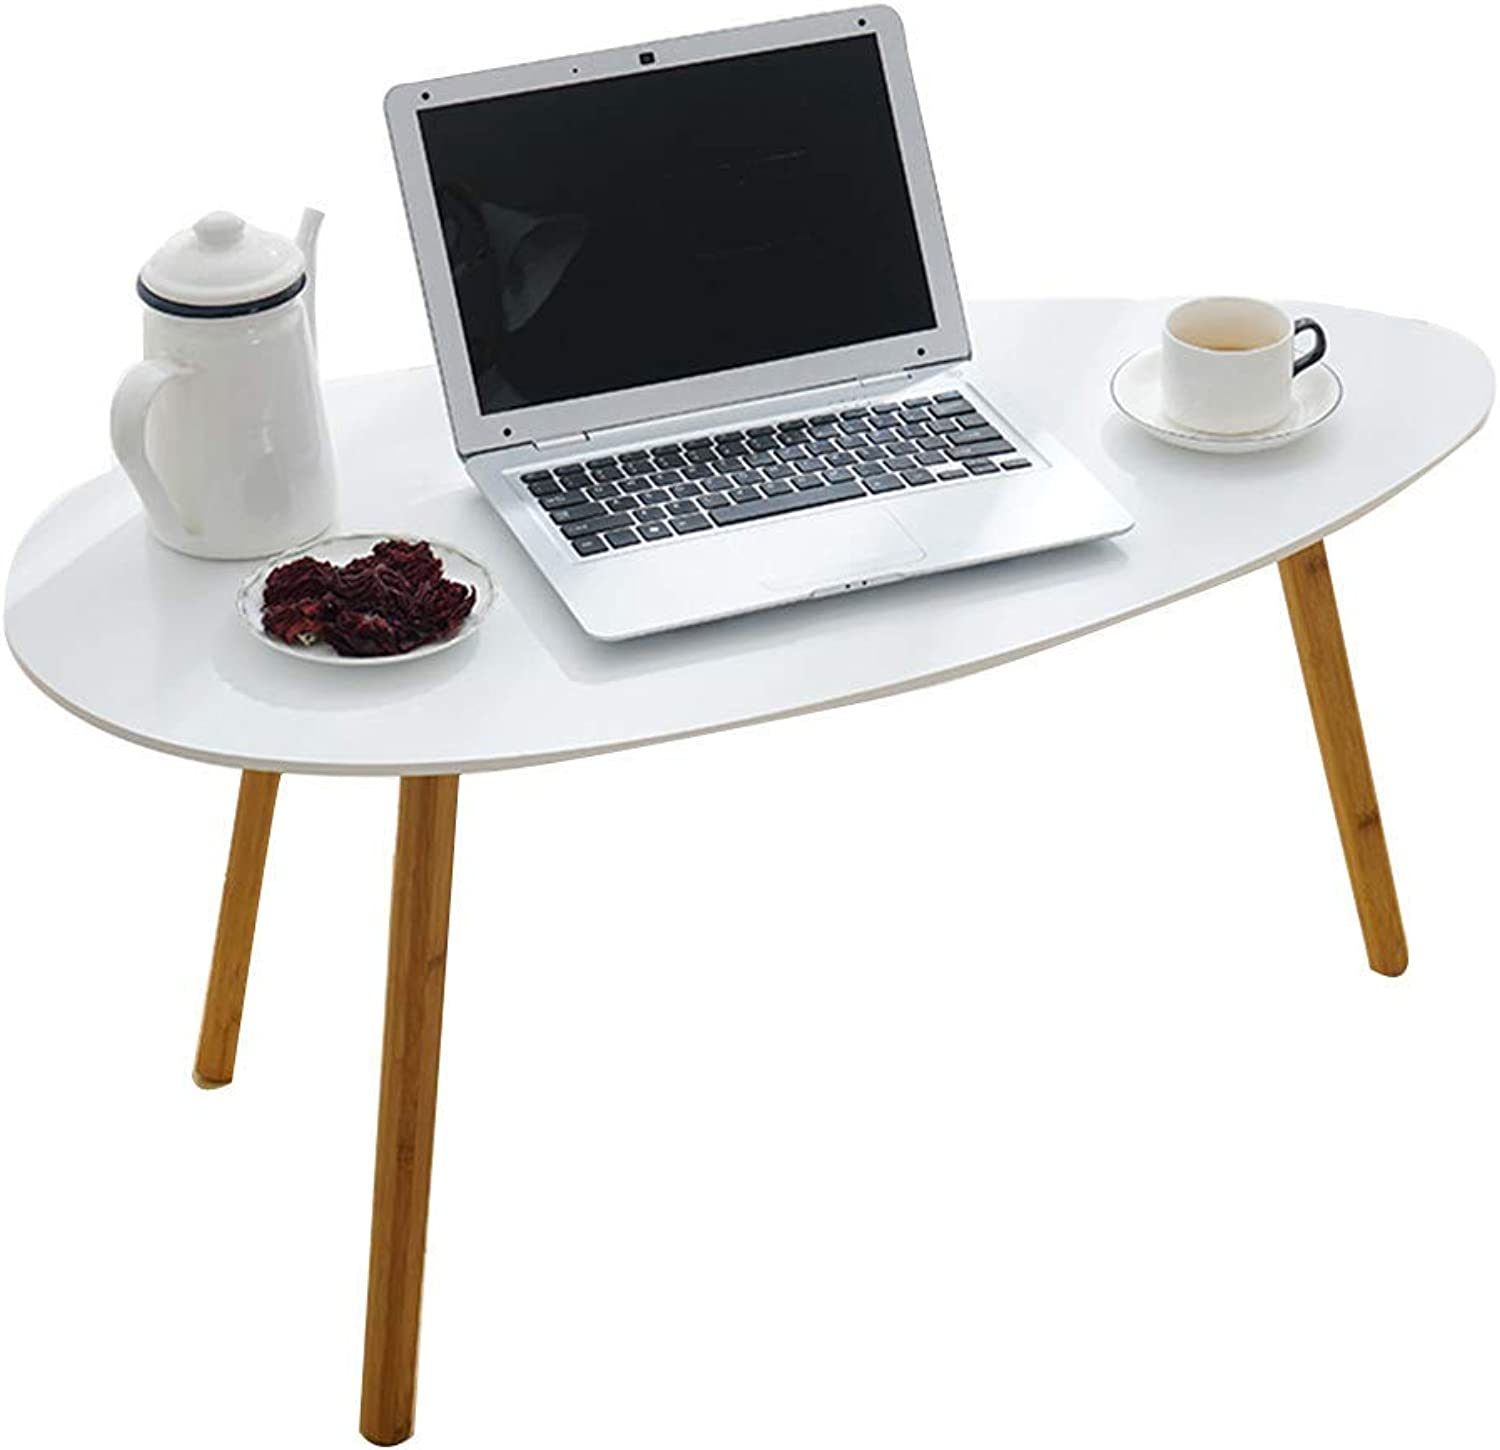 Axdwfd Computer Table Coffee Decorative Surface for Home Office Living Room Sofa Side Table 73.3  39  45.5 (cm) White